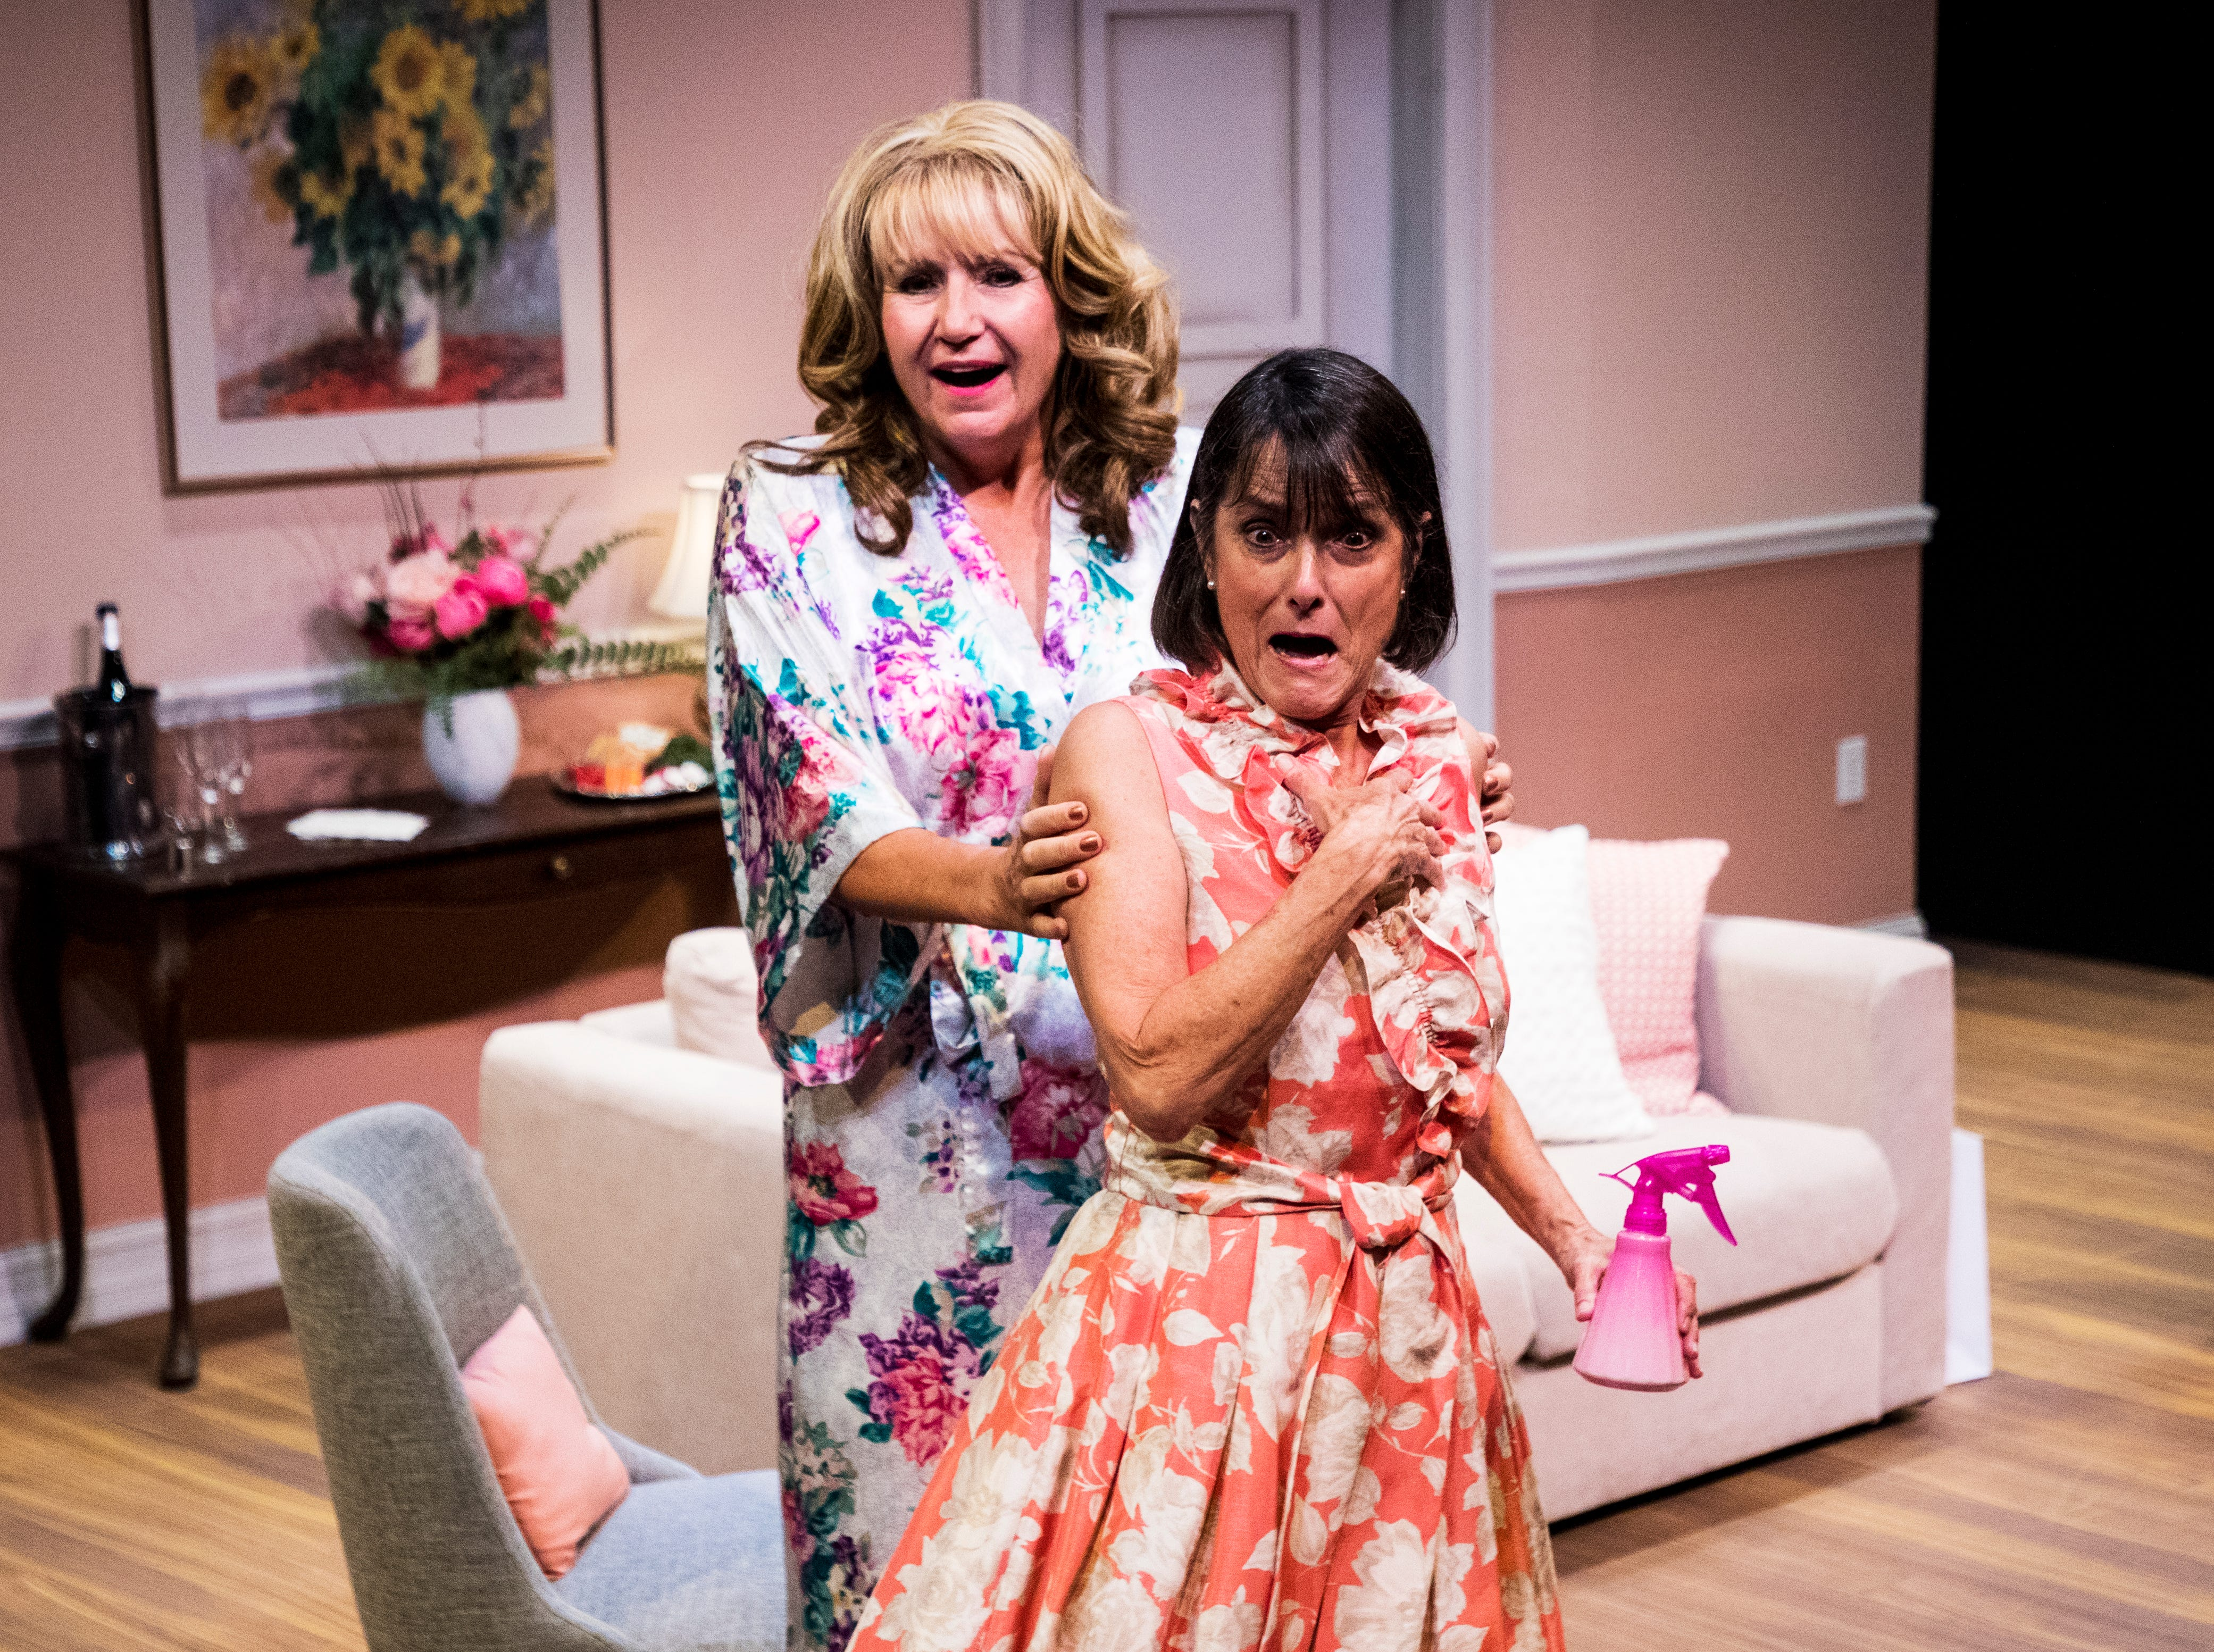 Pamela Austin playing Monette and Judy Scribner playing Libby Ruth act out a scene during a dress rehearsel in Always a Bridesmaid. It is playing at the Tobye Theater at Sugden Community Theater on 5th Ave. in Naples from March 27-April 20.